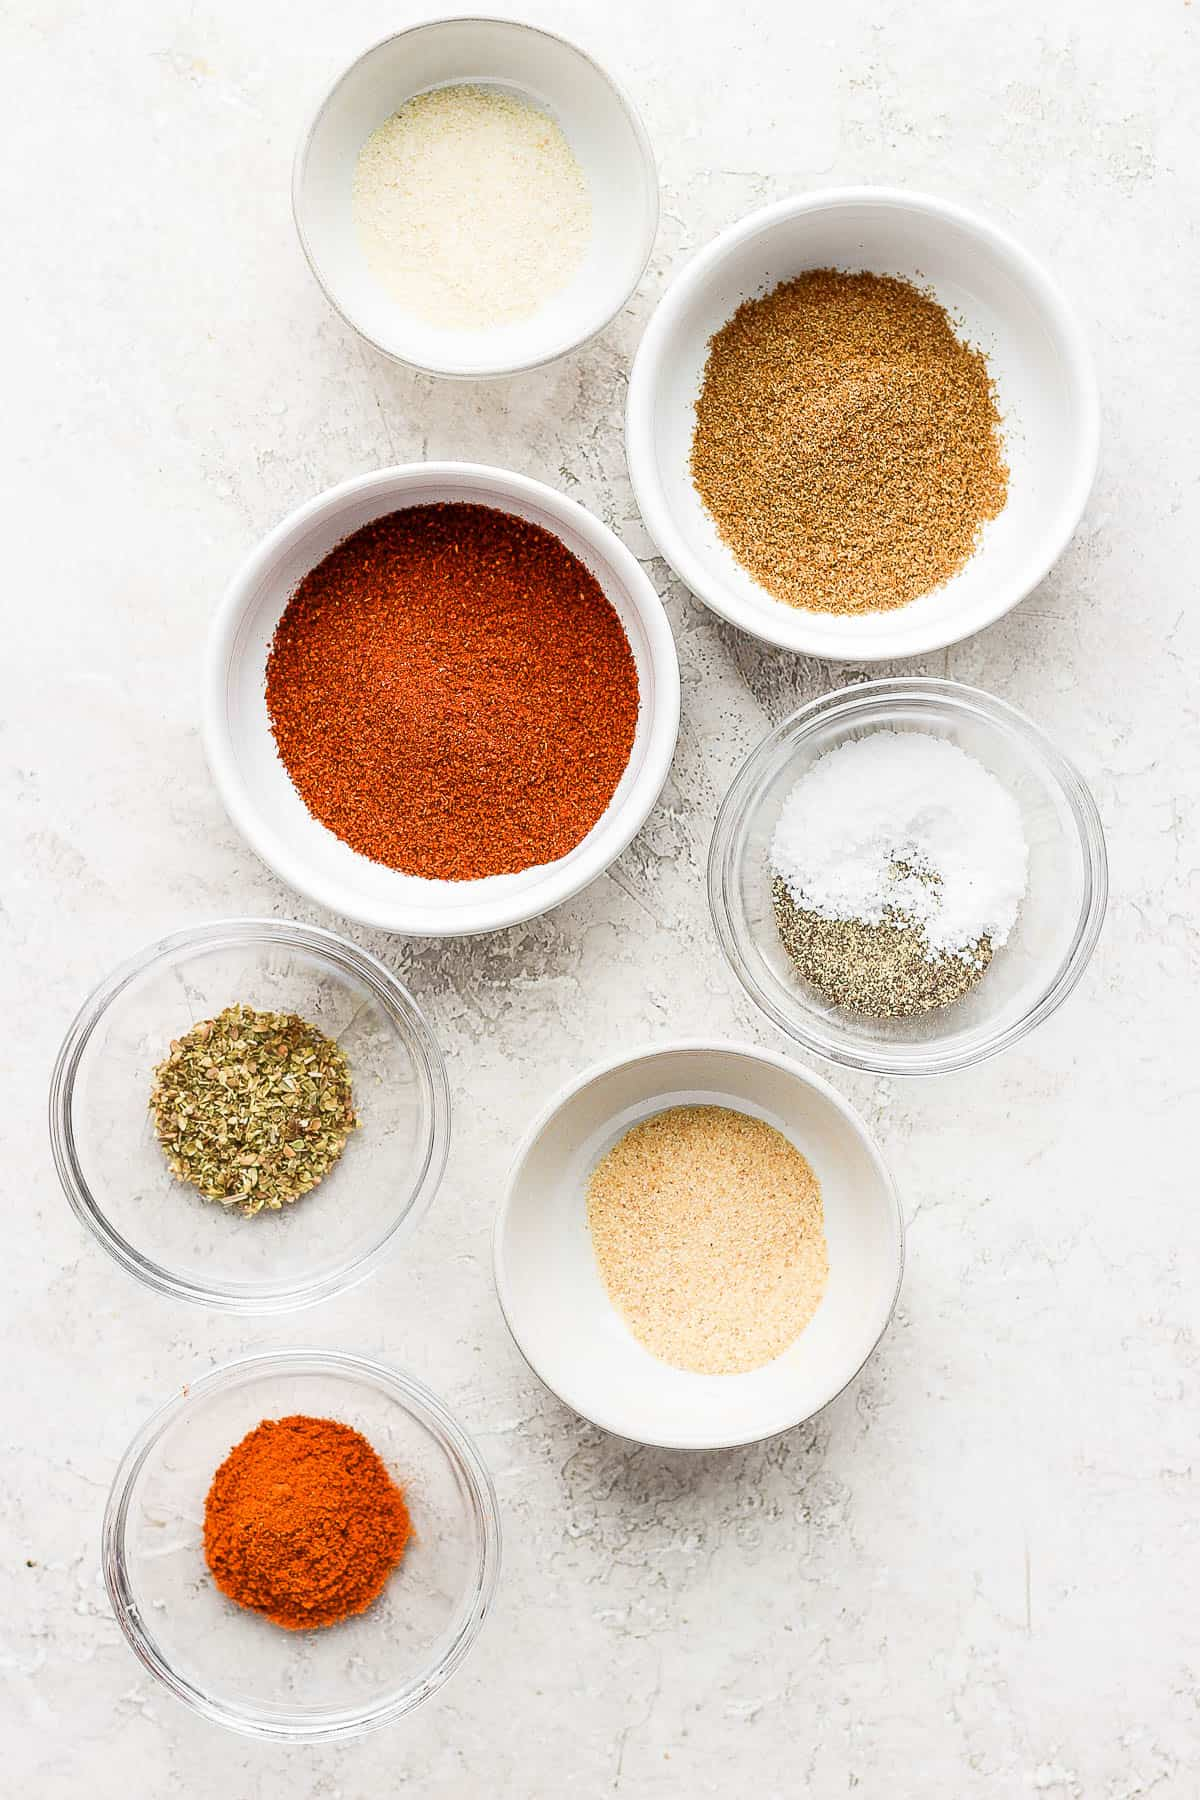 6 spices for making taco seasoning plus salt and pepper